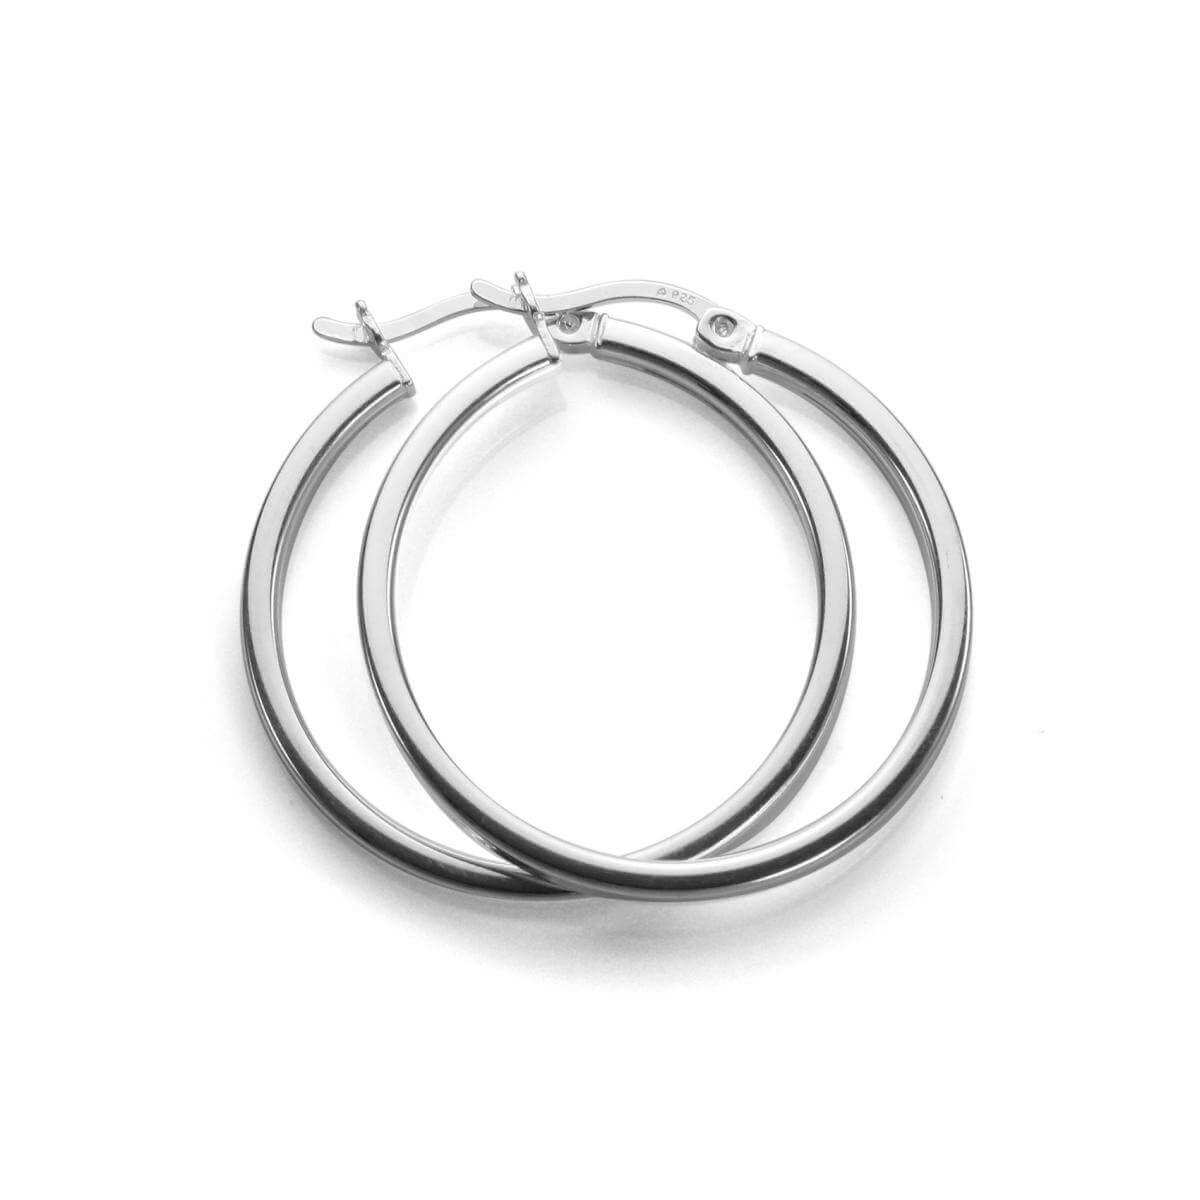 Sterling Silver 25mm Square Tube Hoop Earrings